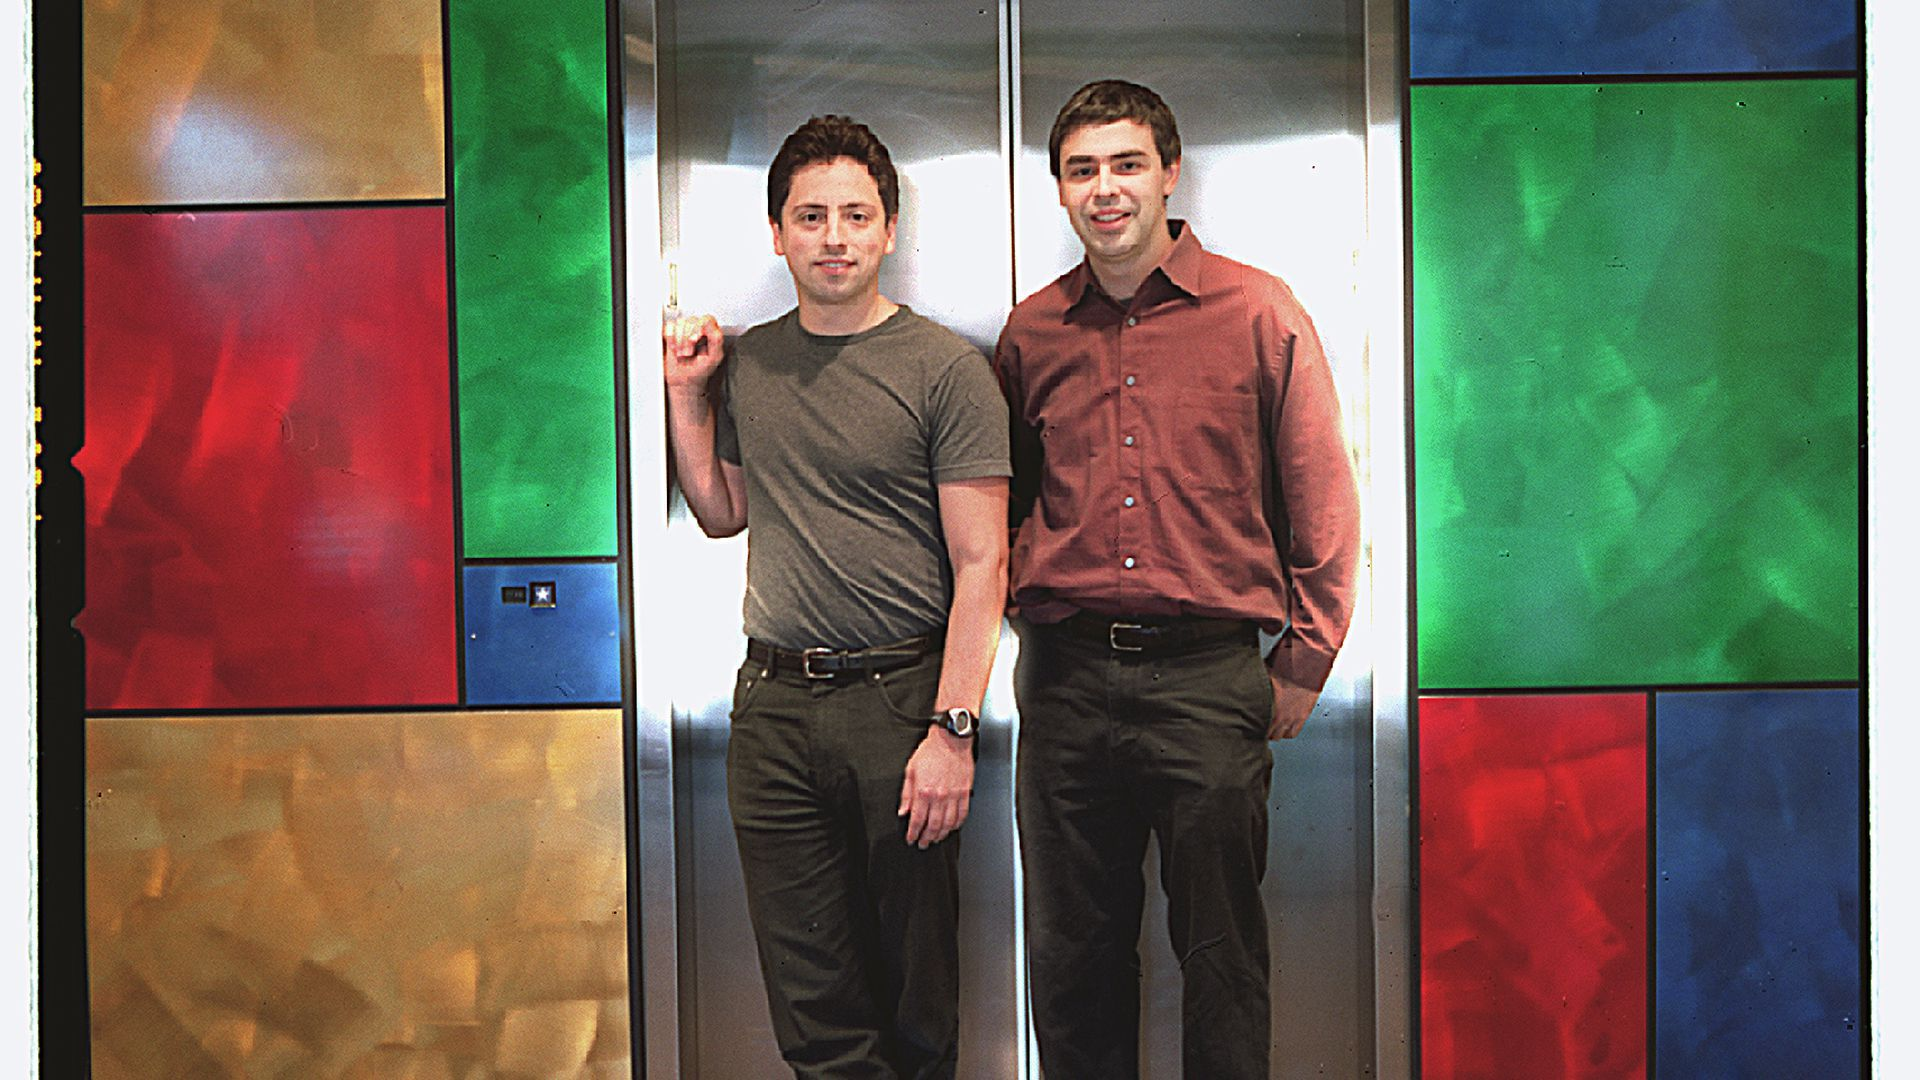 Sergey Brin and Larry Page in 2002.